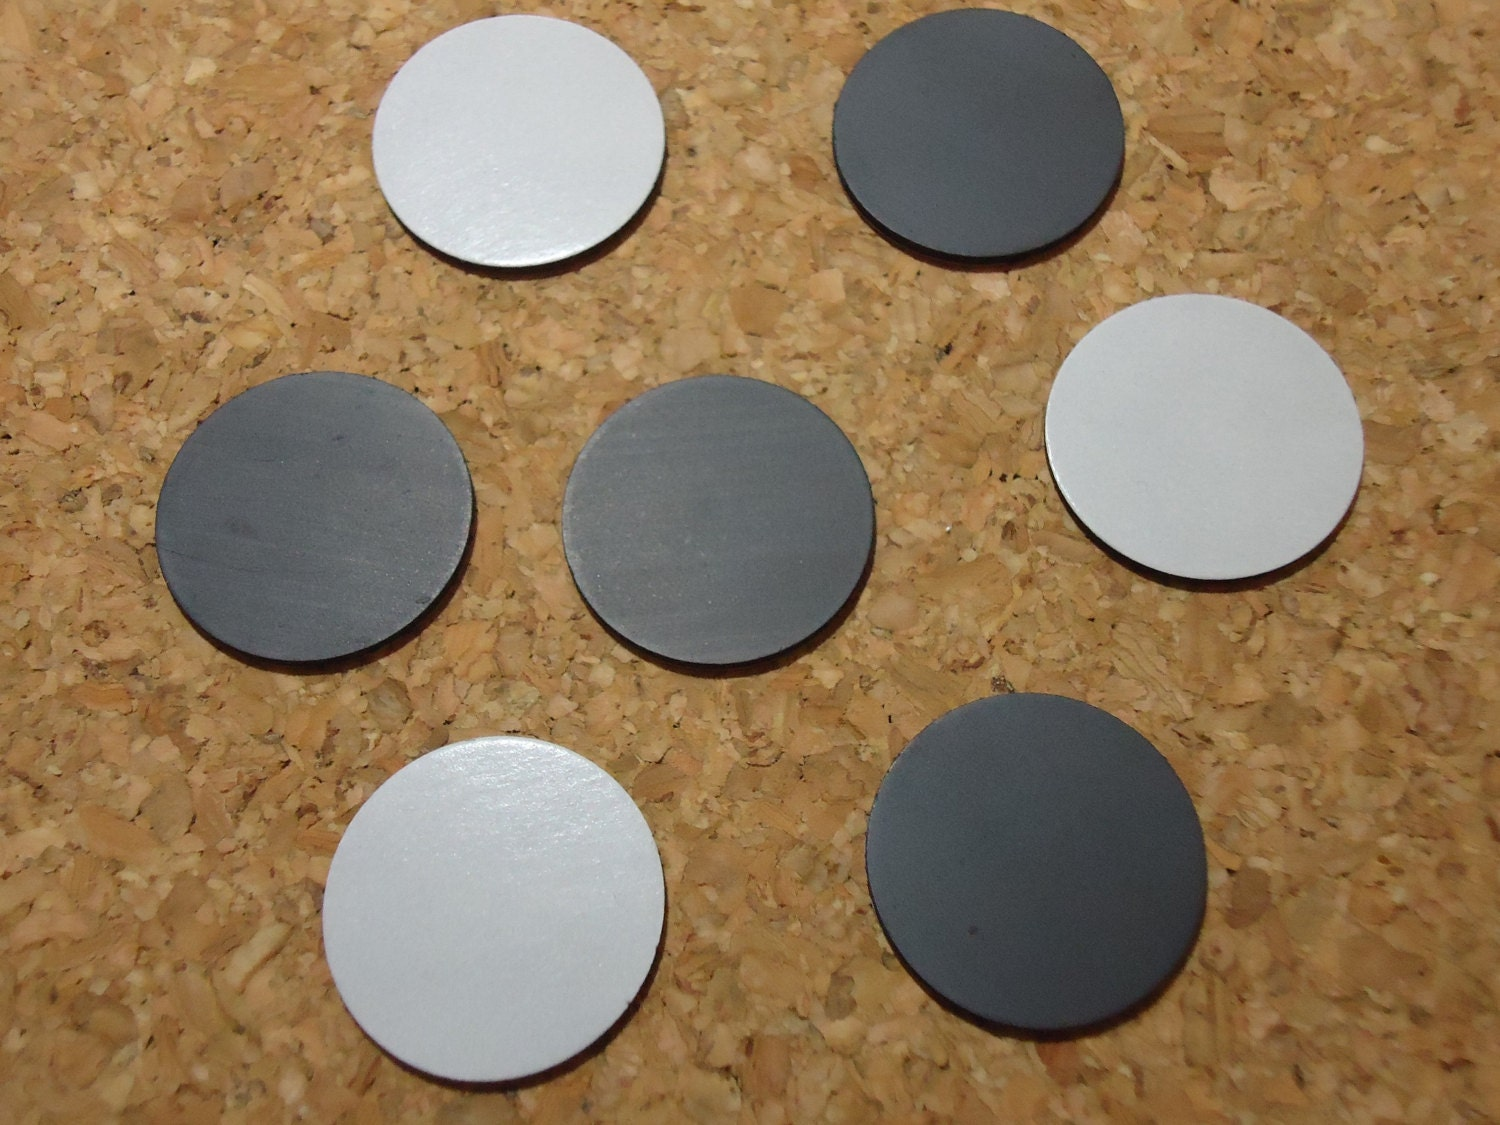 50 1 adhesive round magnets diy great for crafts